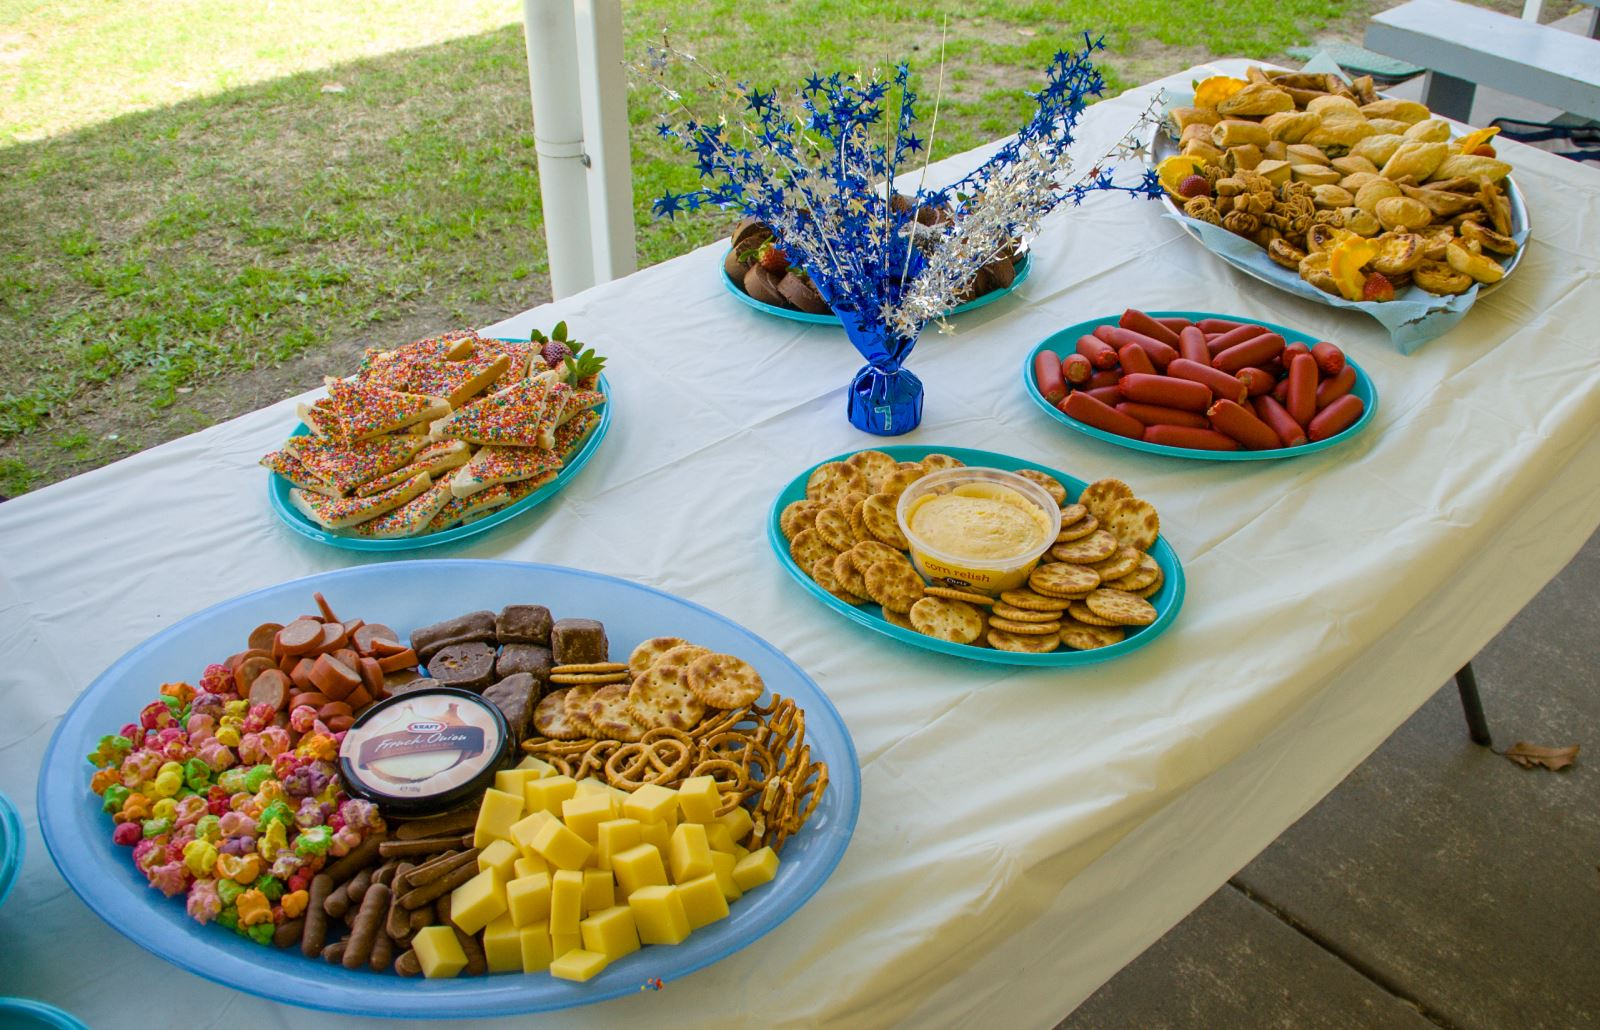 Including On The Day Of Your Party By Cash Payment Except Where Catering Is To Be Provided Additional Guests In Which Case We Require All Attendees